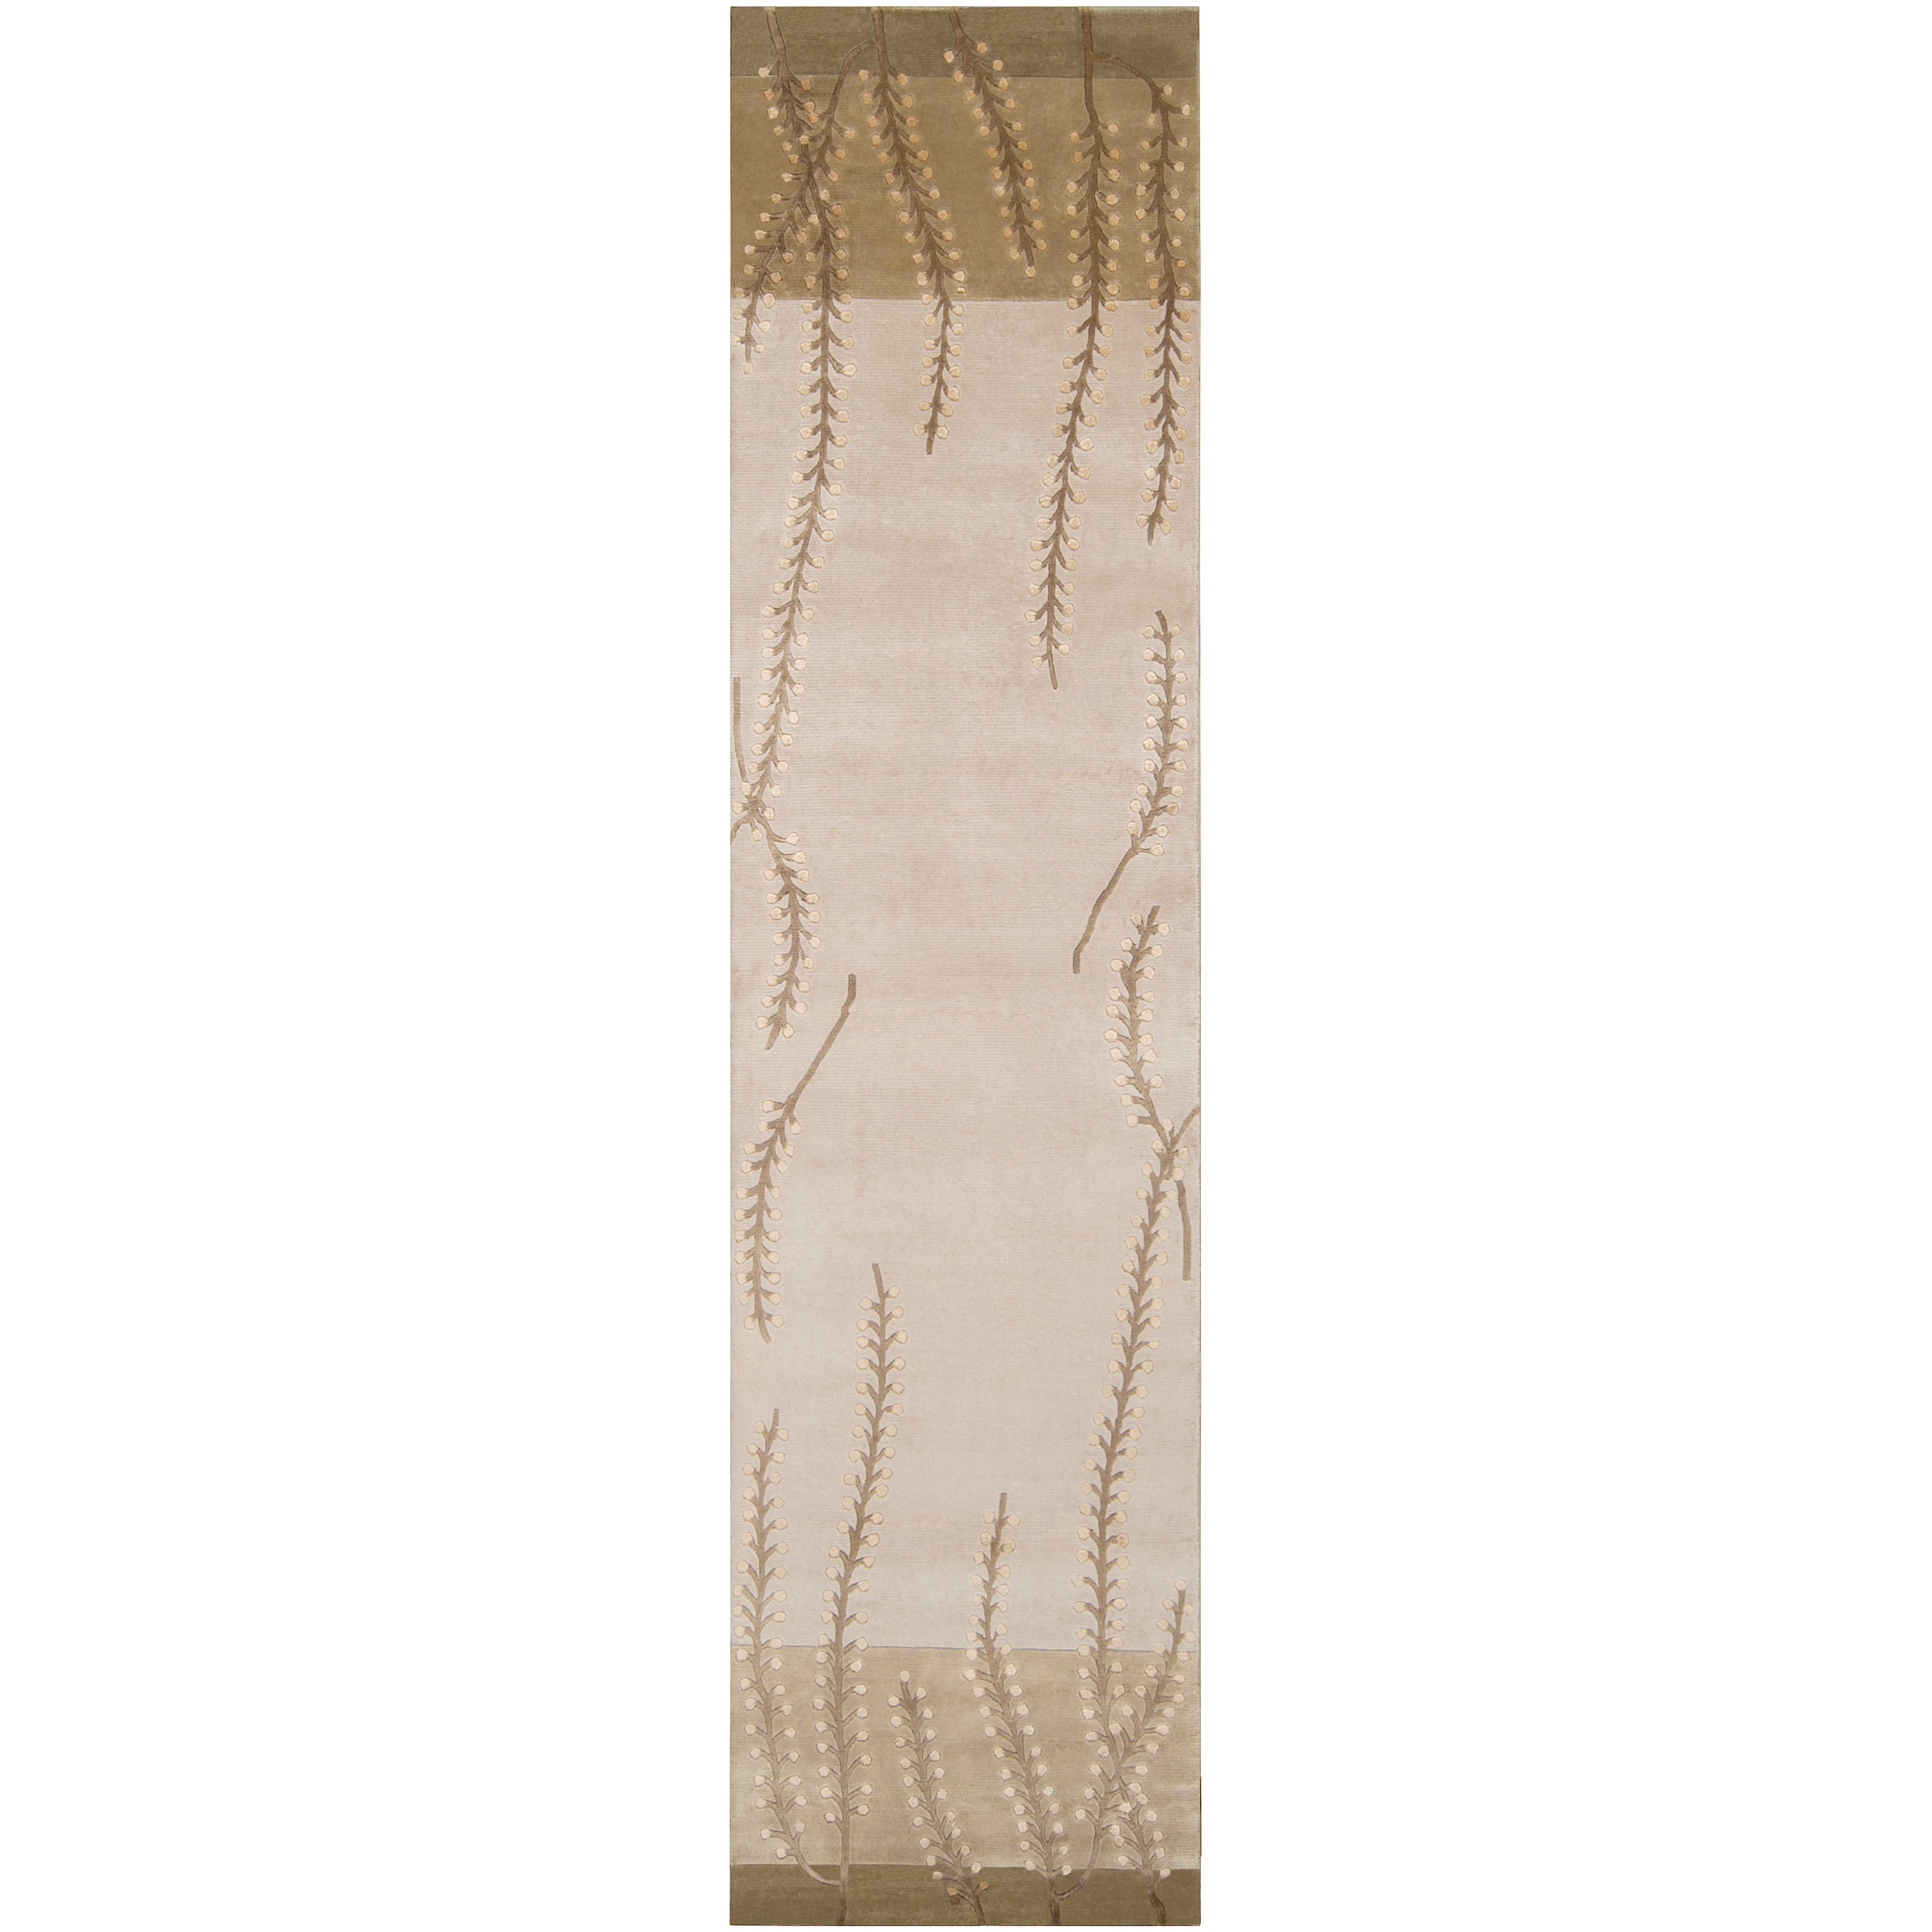 """Hand-Knotted Abstract Multicolored La Crosse Semi-Worsted New Zealand Wool Area Rug - 2'6"""" x 10' Runner/Surplus"""